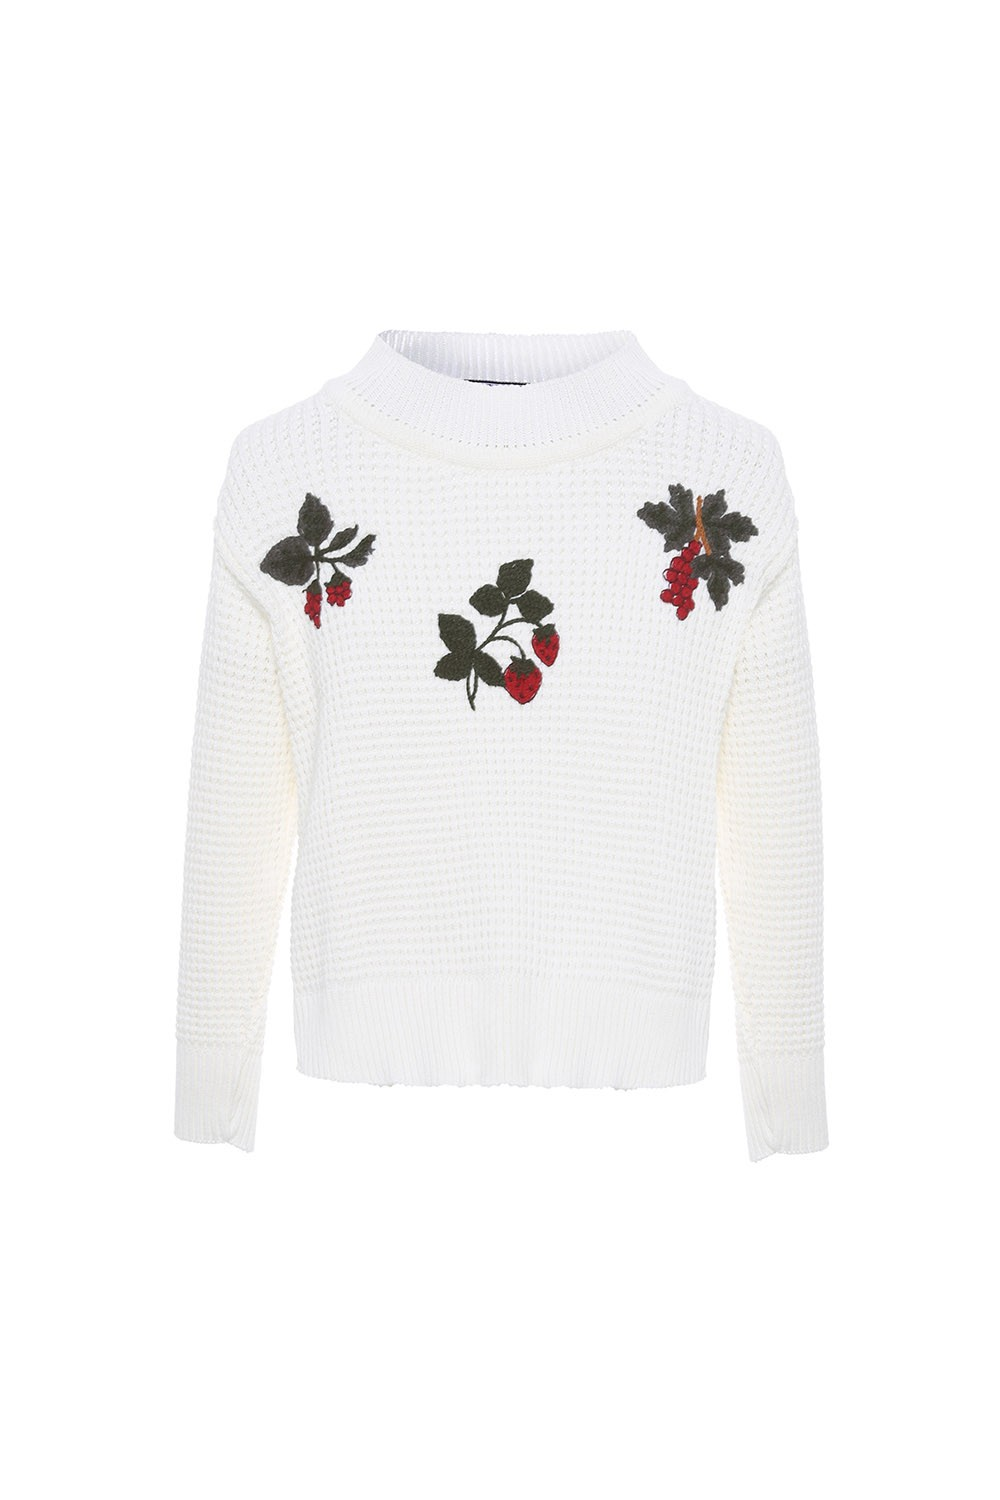 TRICOT BERRIES KIDS I21